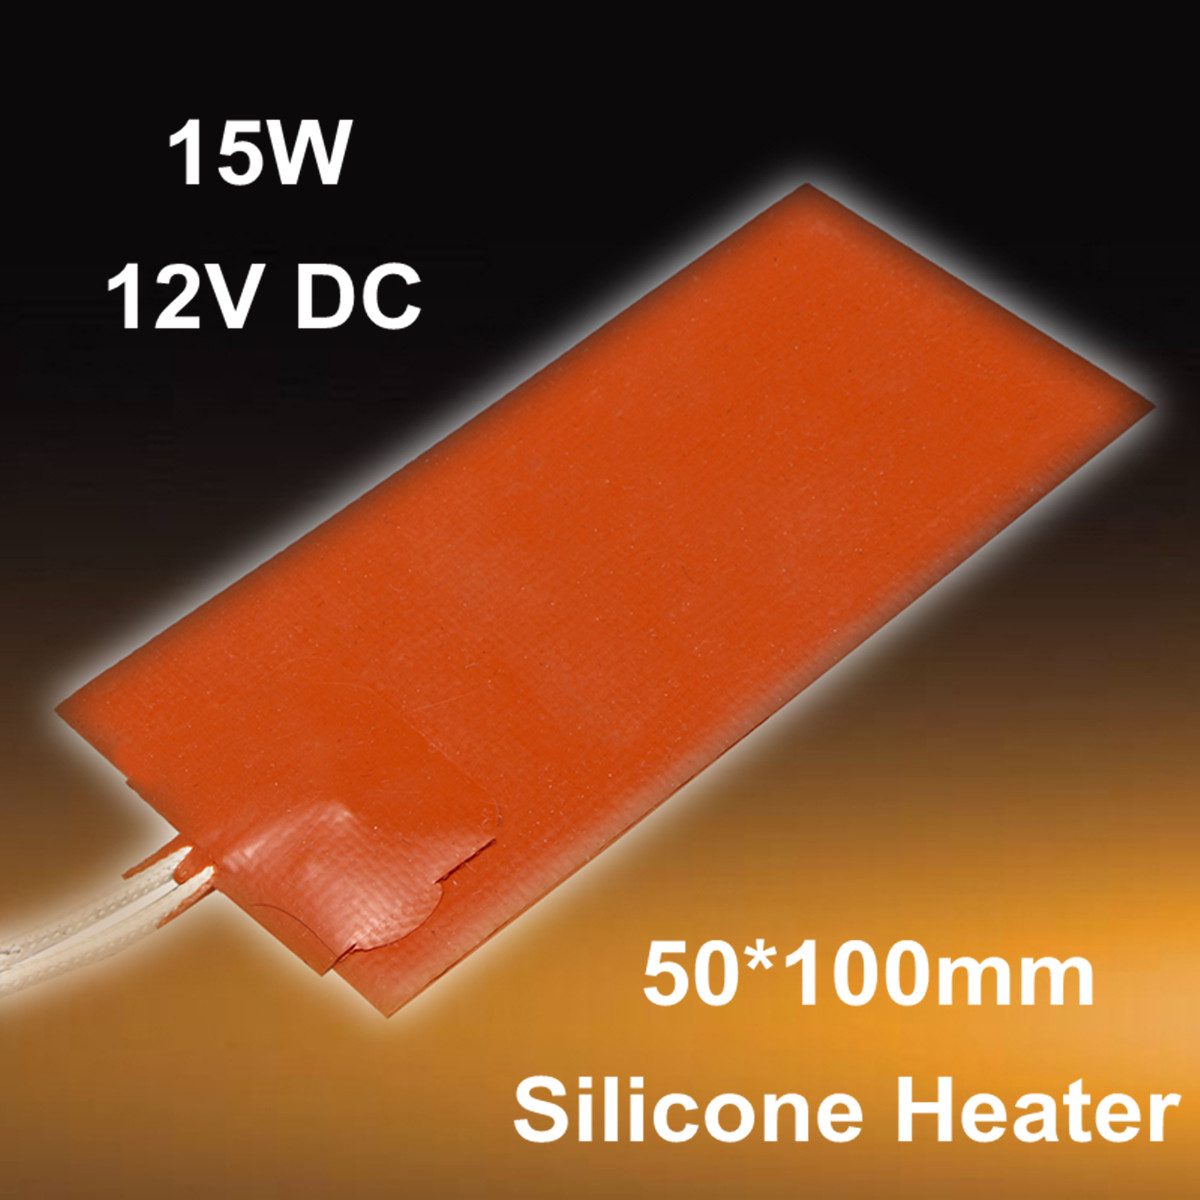 15W 12V DC 50X100mm Flexible Waterproof Silicon Heater Pad Wire Heater Engine Block Oil Pan Hydraulic Tank Heating Plate Mat